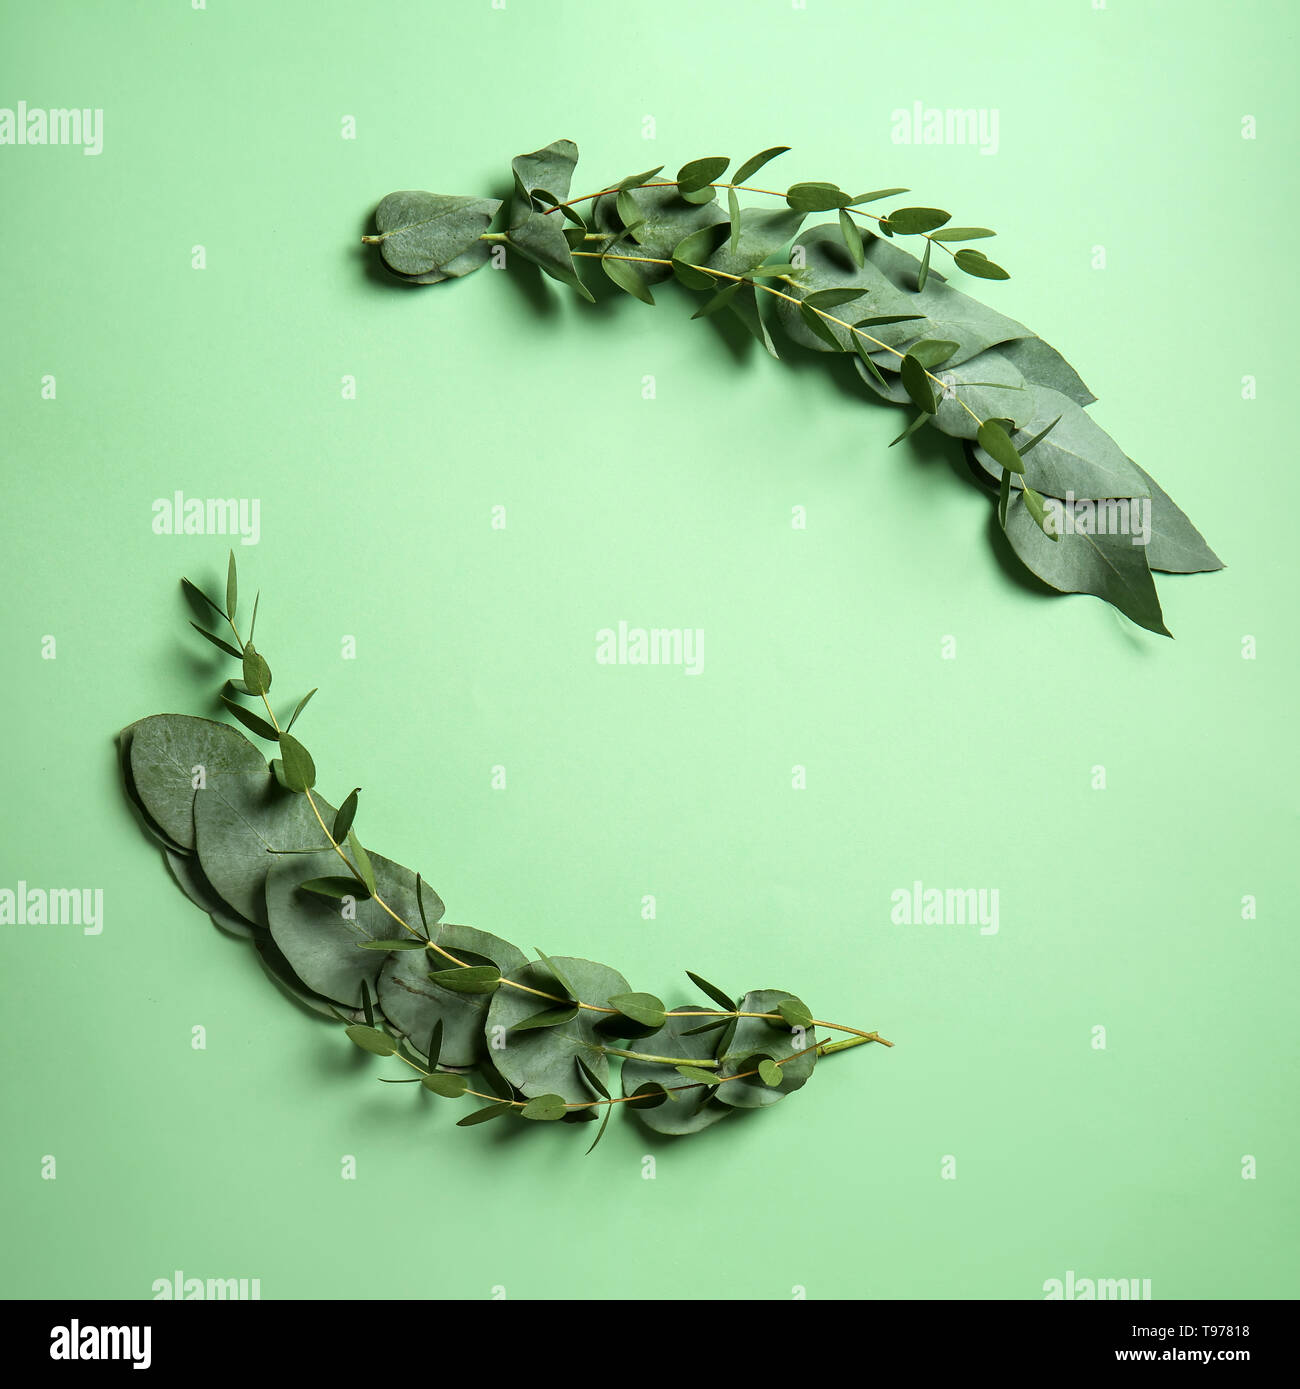 Green eucalyptus branches with leaves on color background - Stock Image